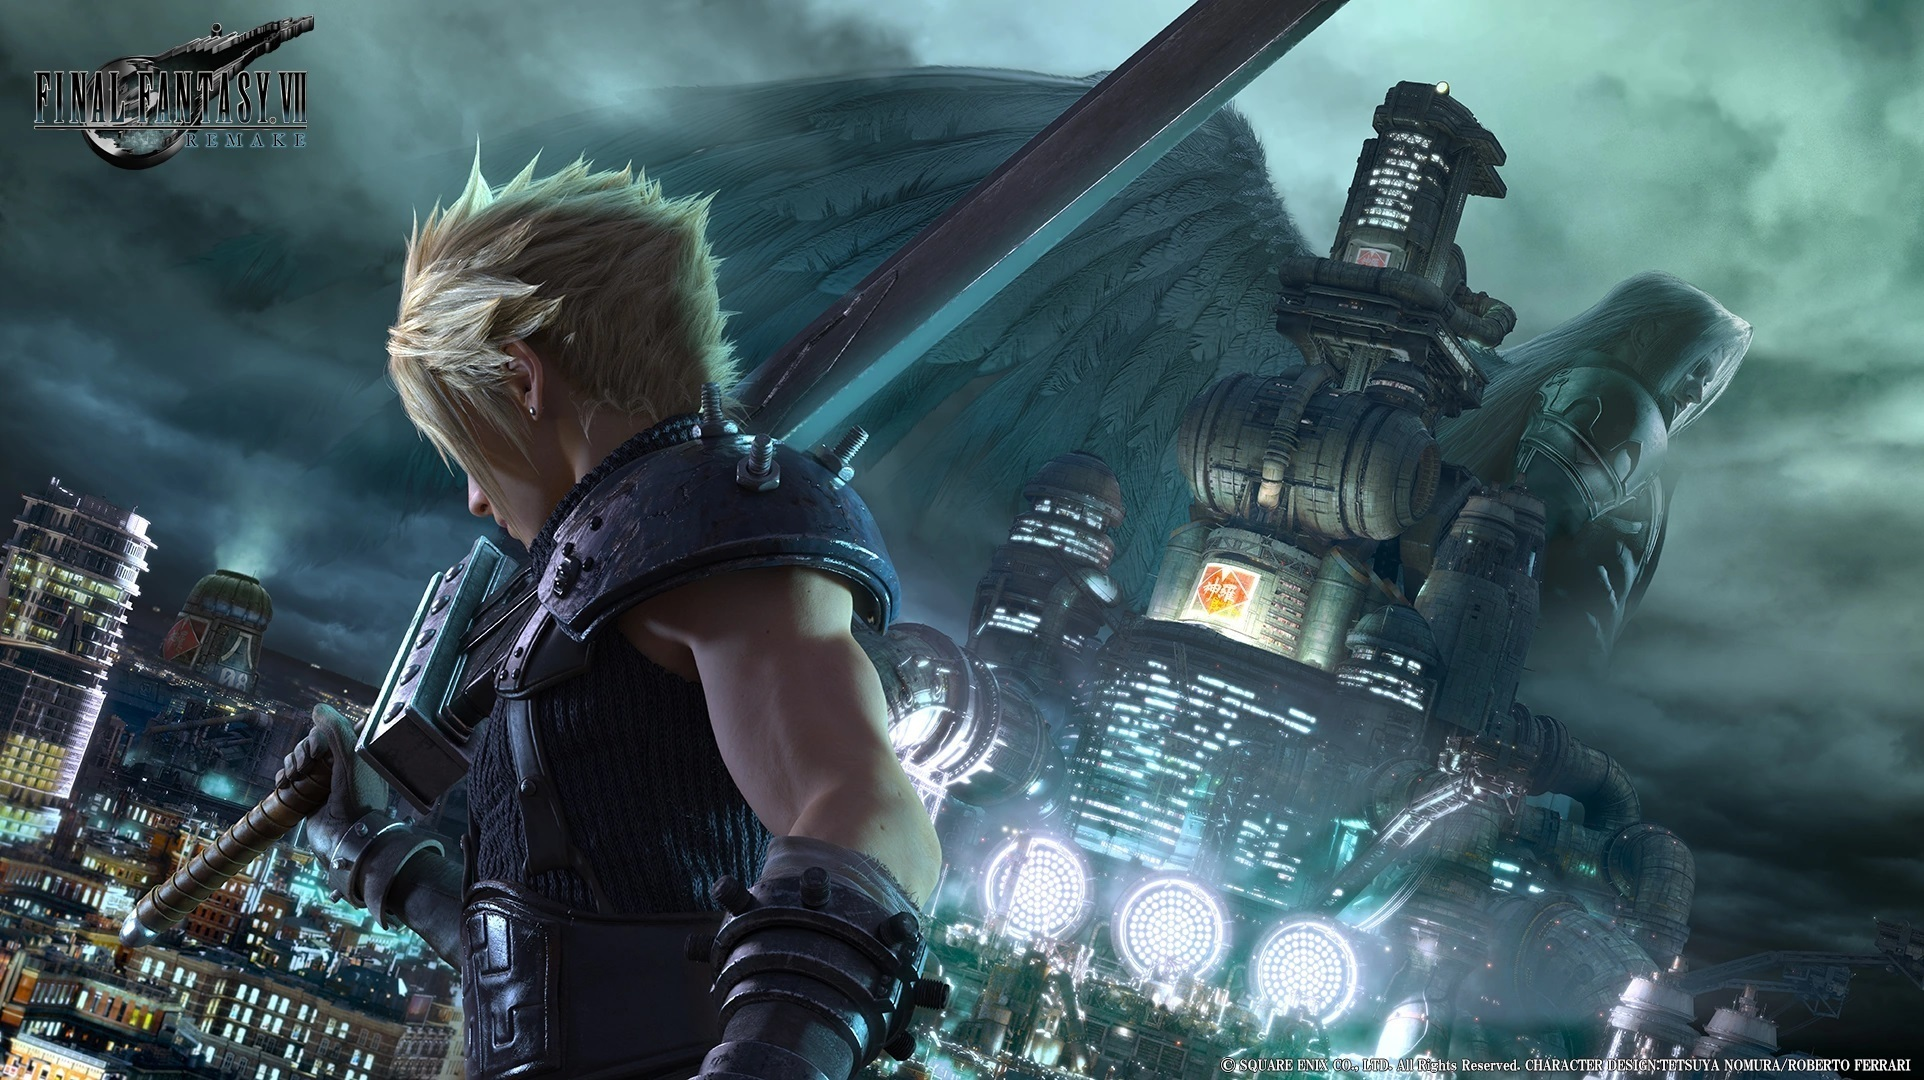 final fantasy vii remake idgameware